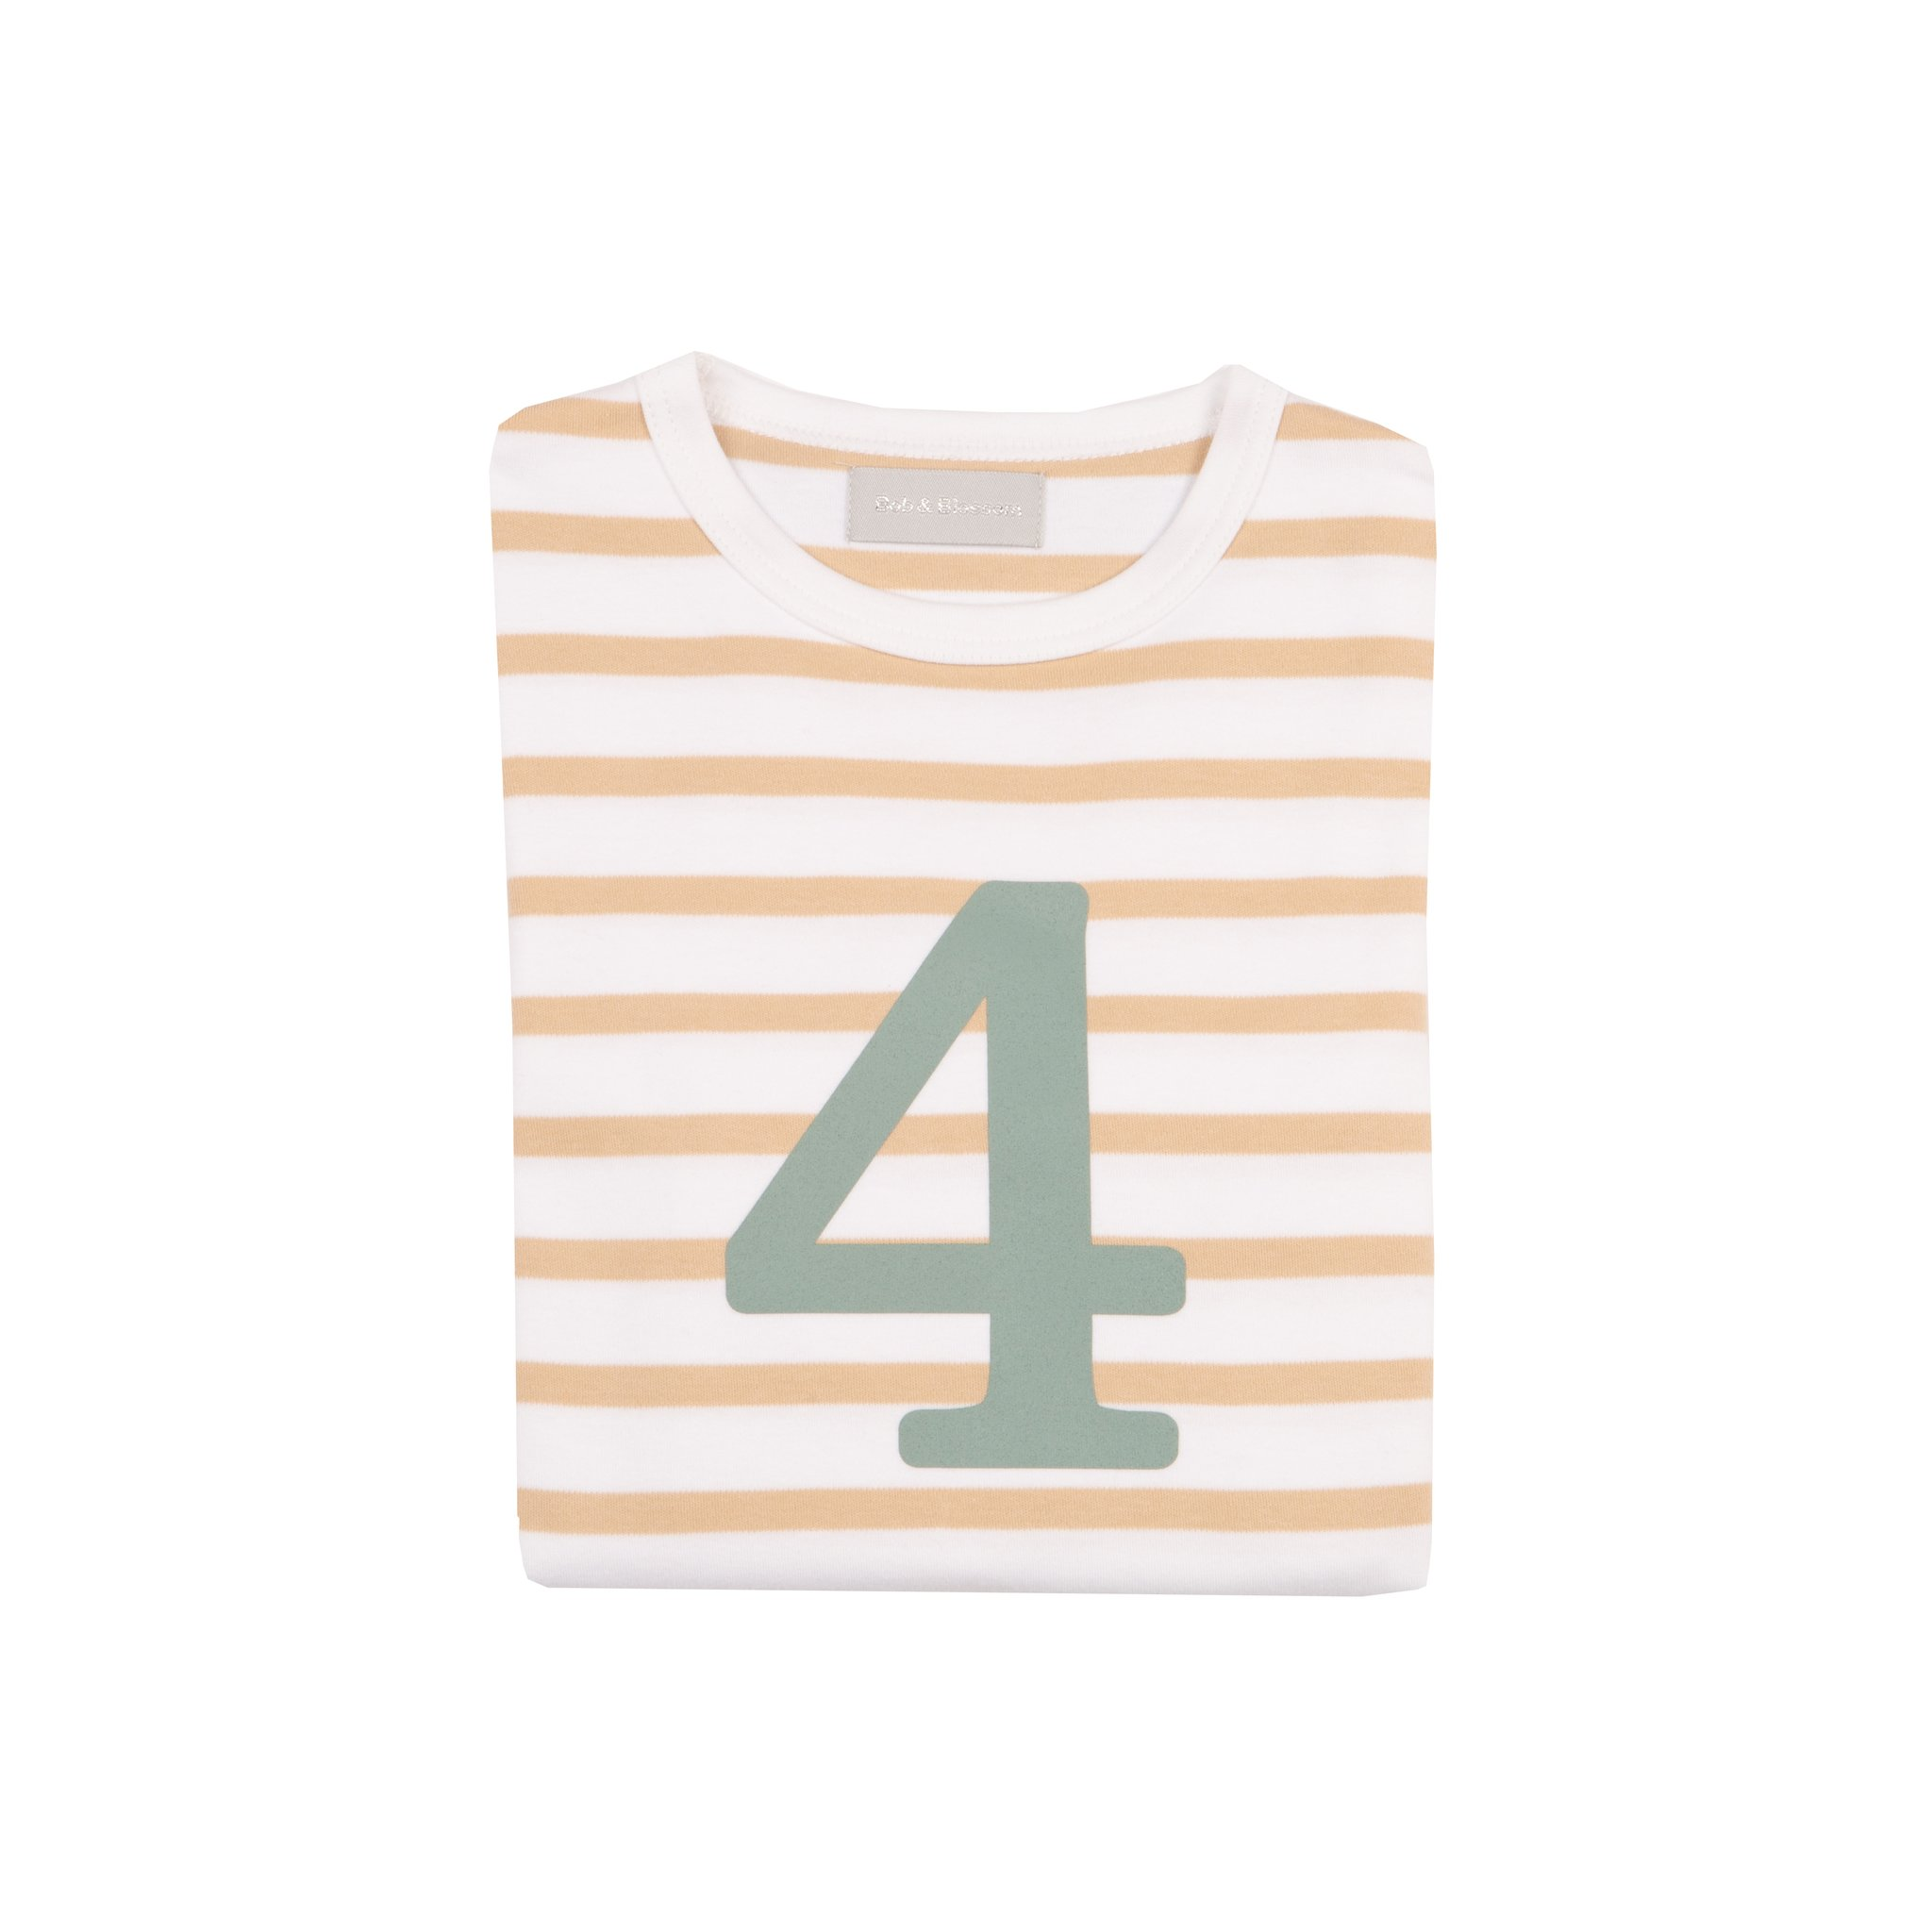 Bob & Blossom - Biscuit & White Striped Number T-shirt